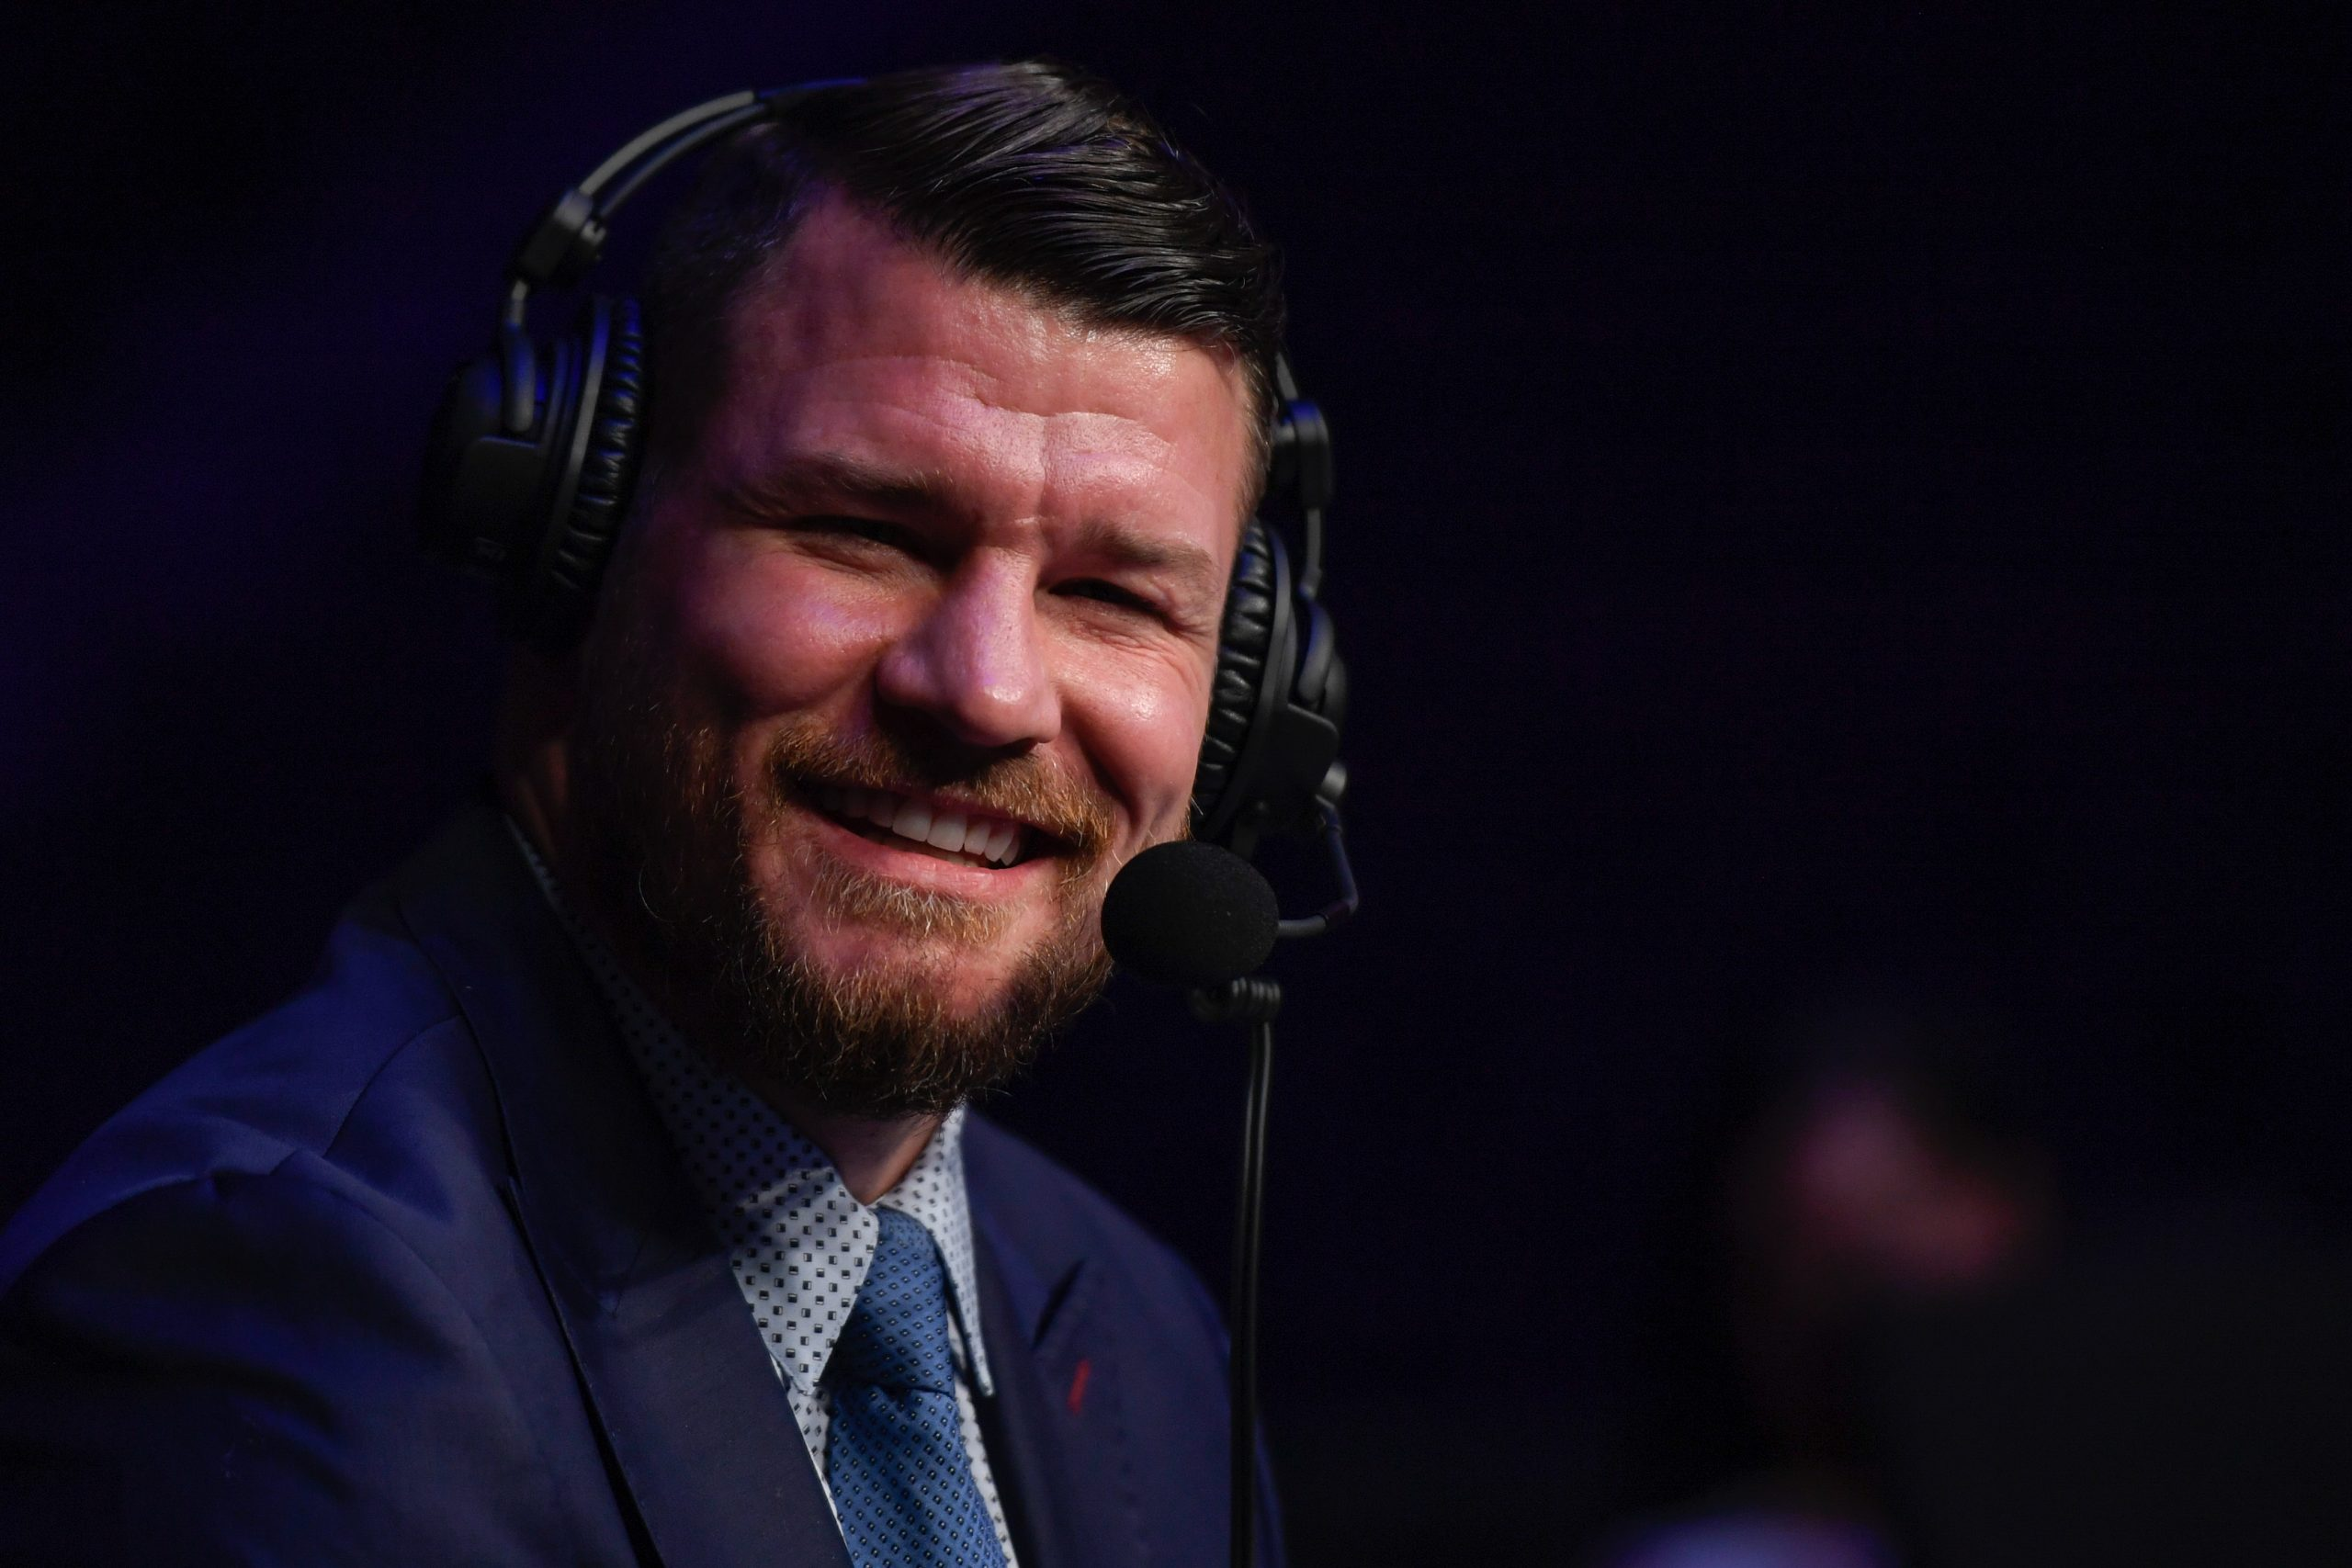 Michael Bisping is a commentator for the UFC but spent some time in prison too